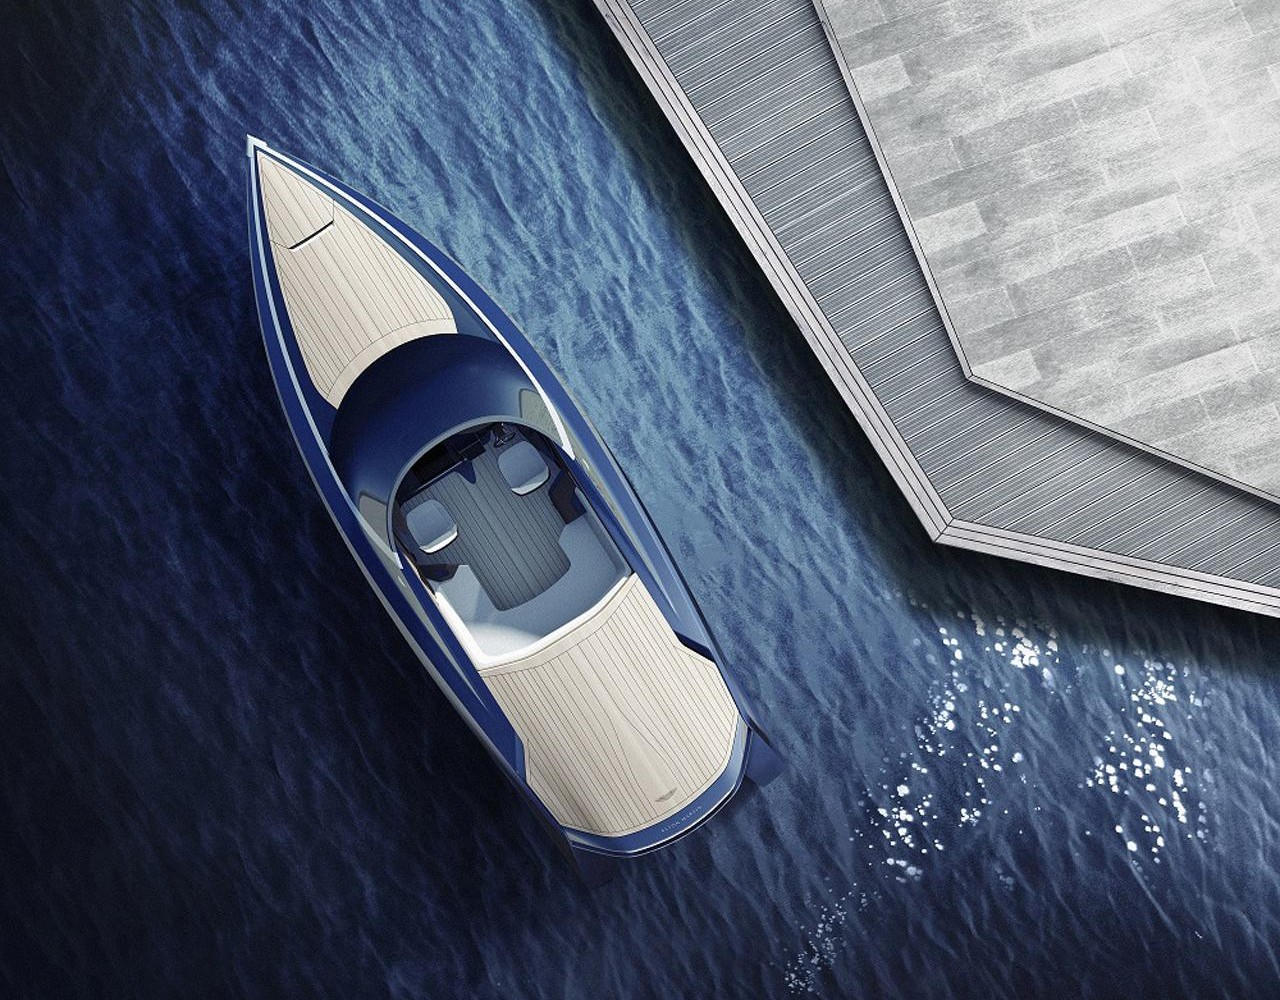 Aston Martin Yacht On Its Way, Will Make DB9 Look Practically Attainable